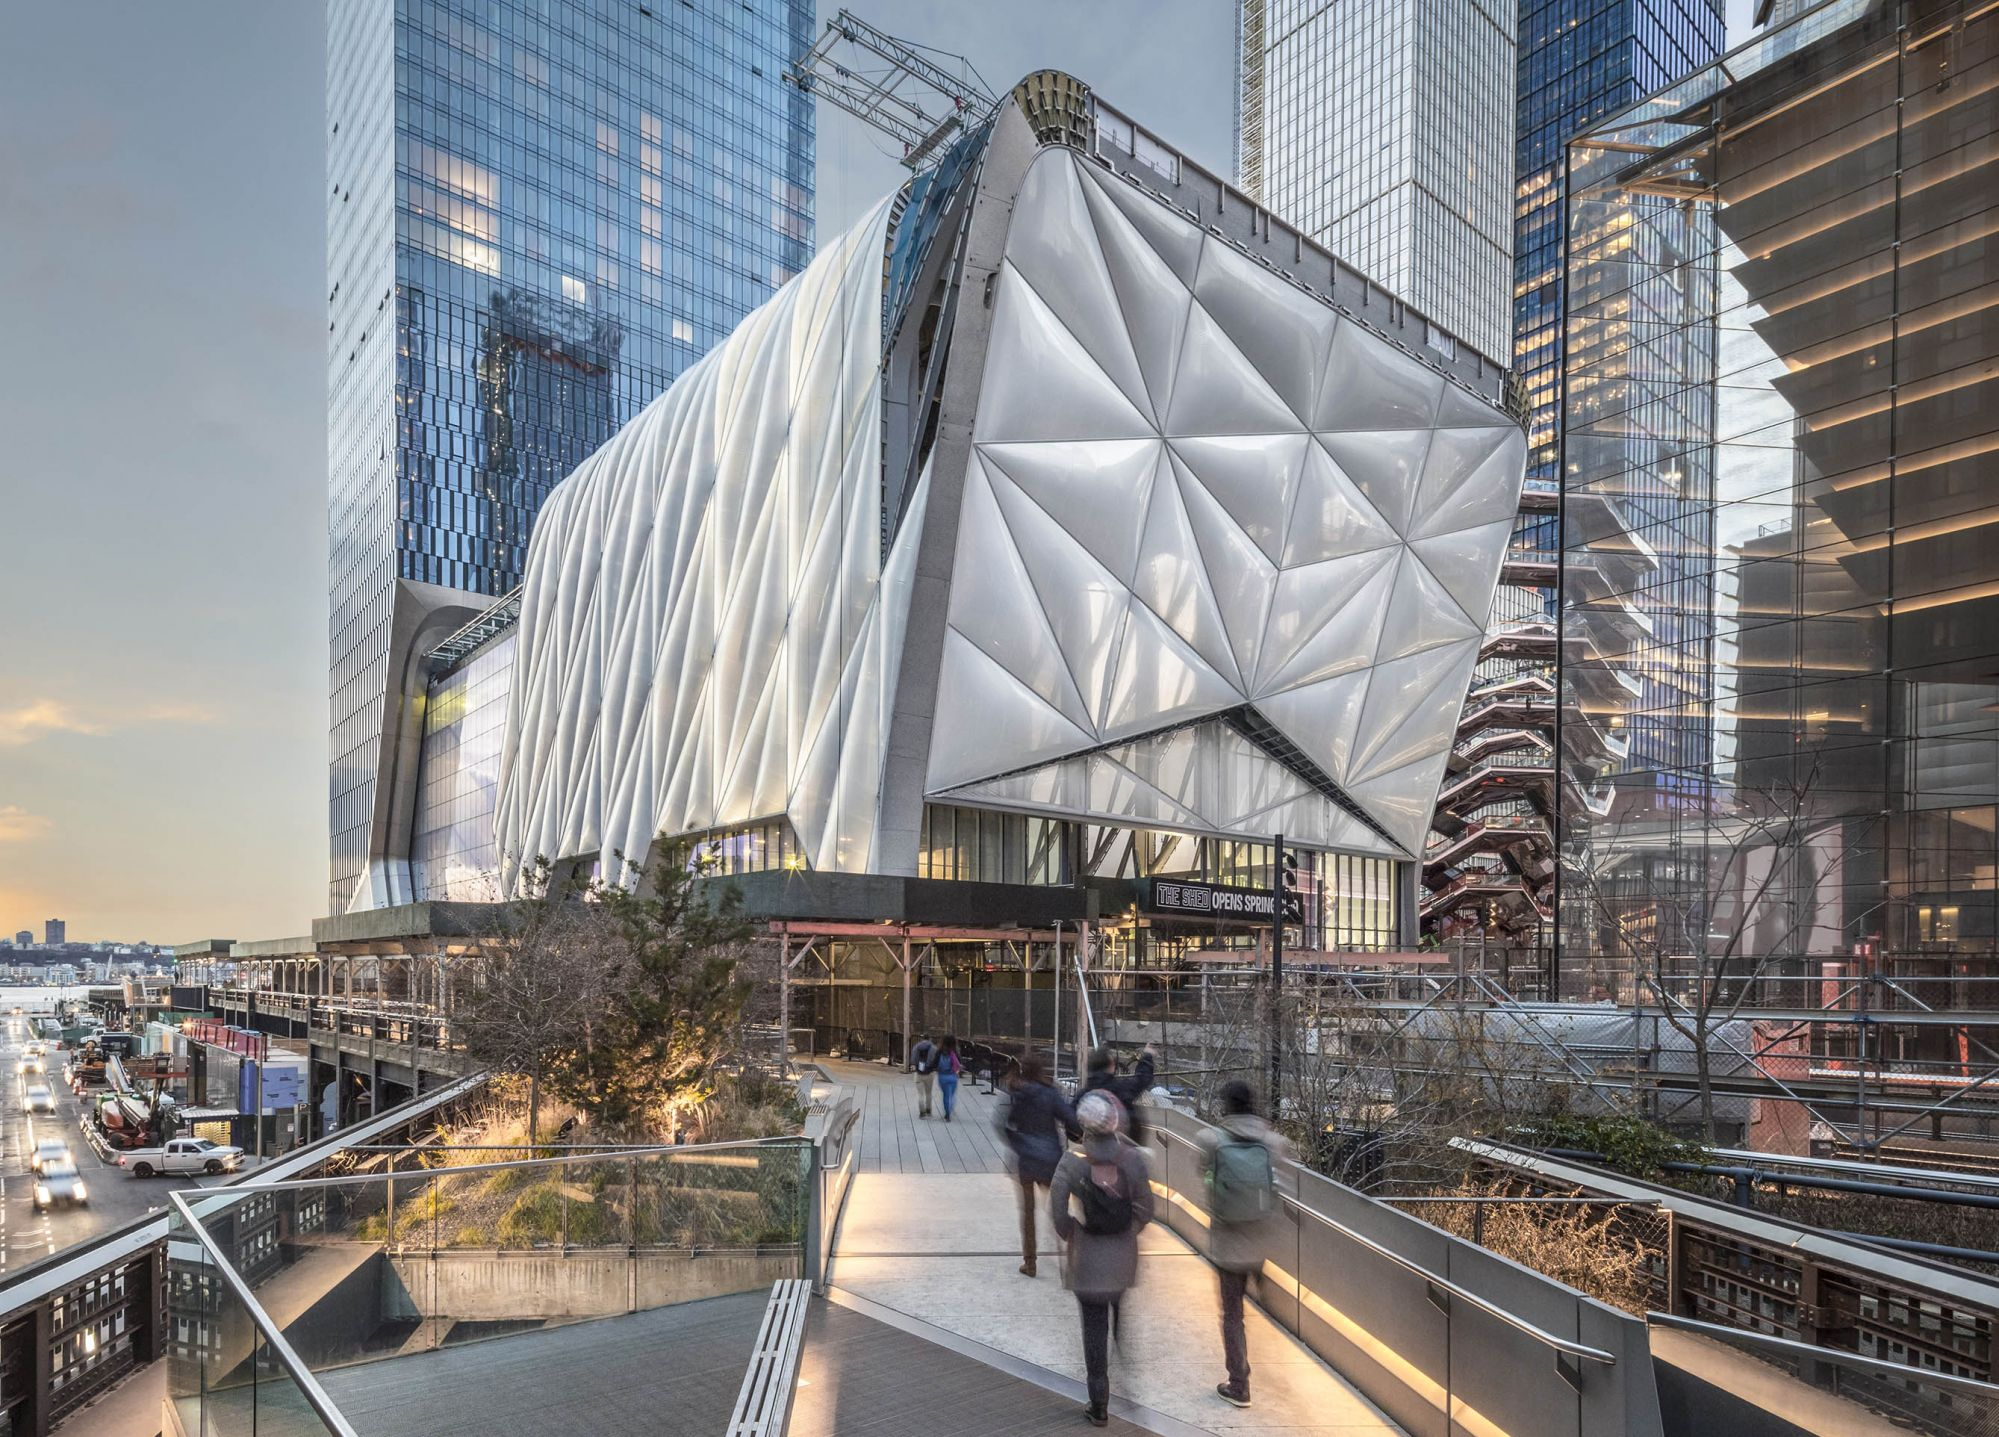 The Shed, new NY arts venue, sets April opening